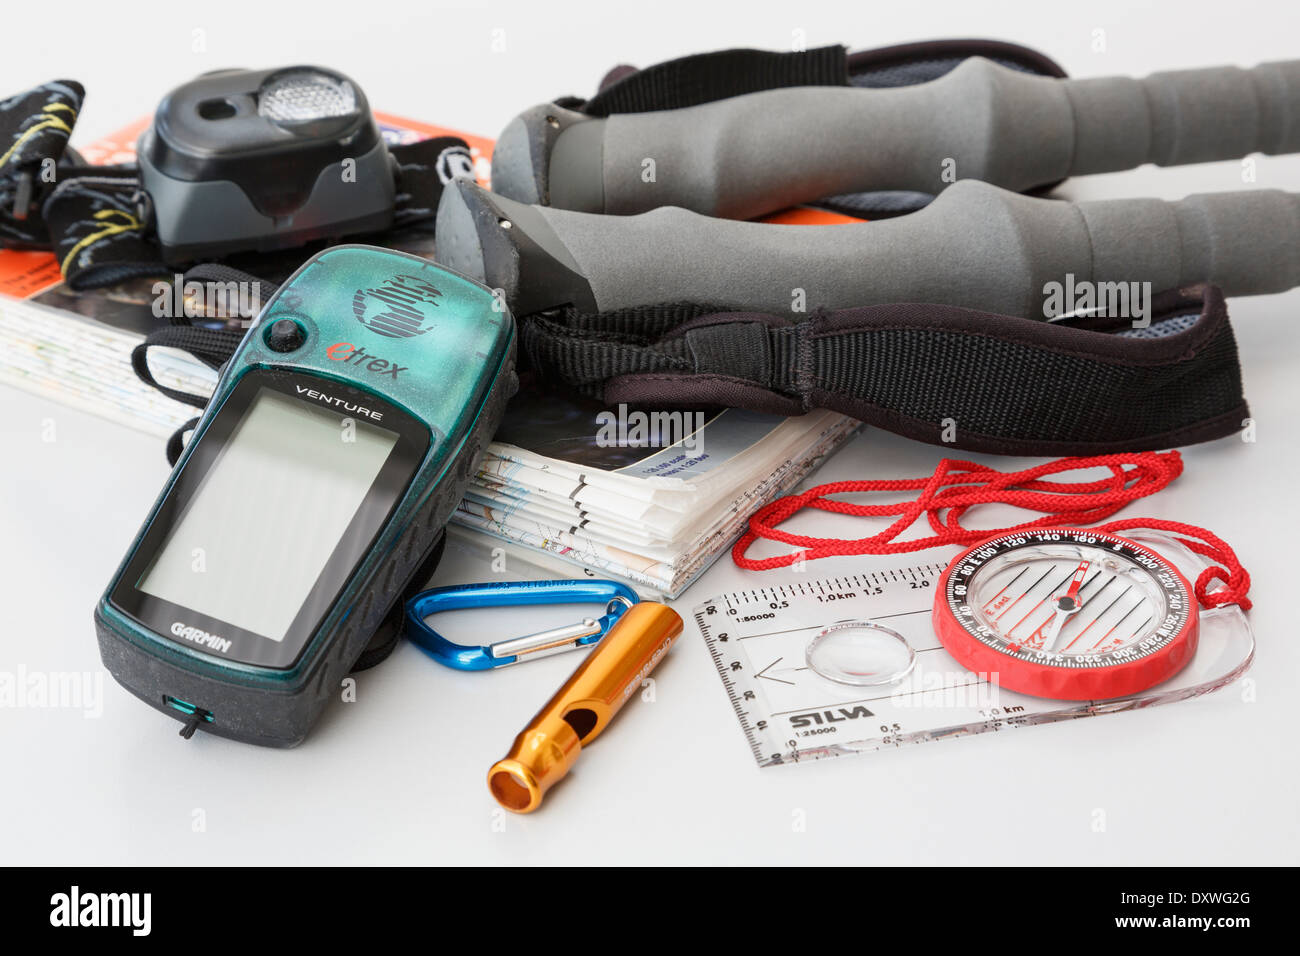 Walking and hiking equipment with Ordnance Survey map, navigation compass, Garmin Etrex GPS, safety whistle, head torch and trekking poles. England UK - Stock Image